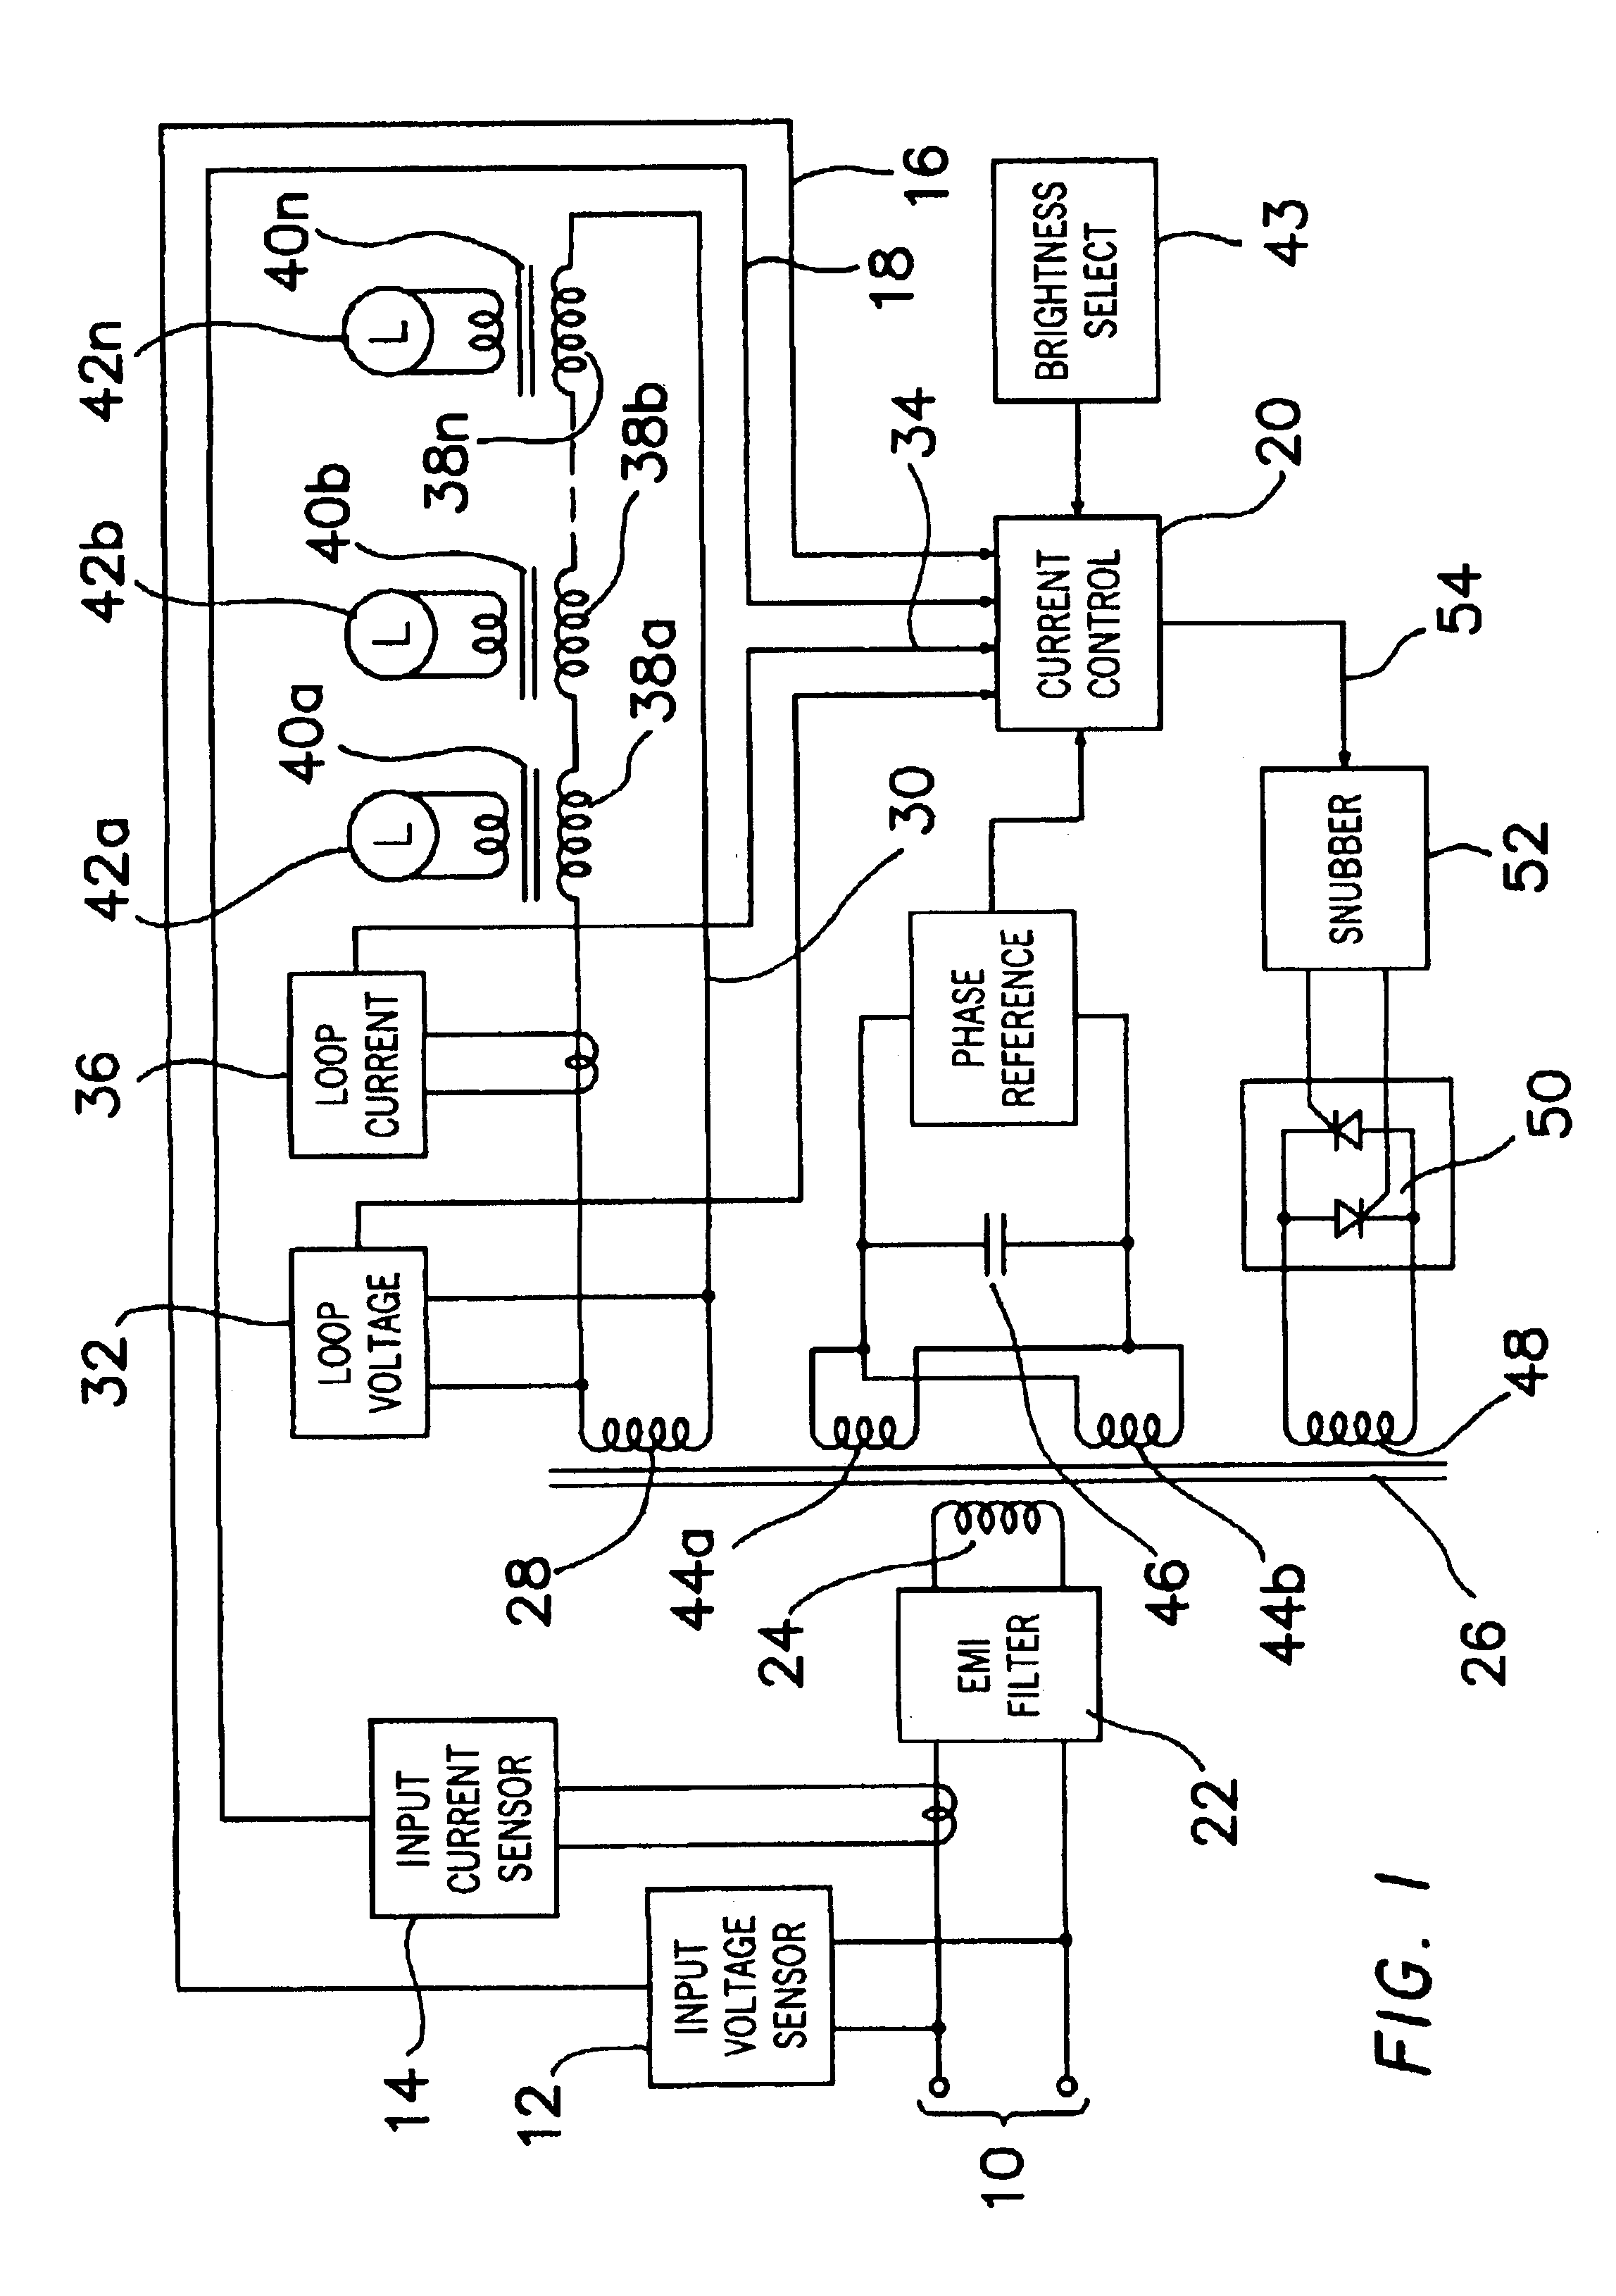 airport lighting wiring diagram airport wiring diagrams patent